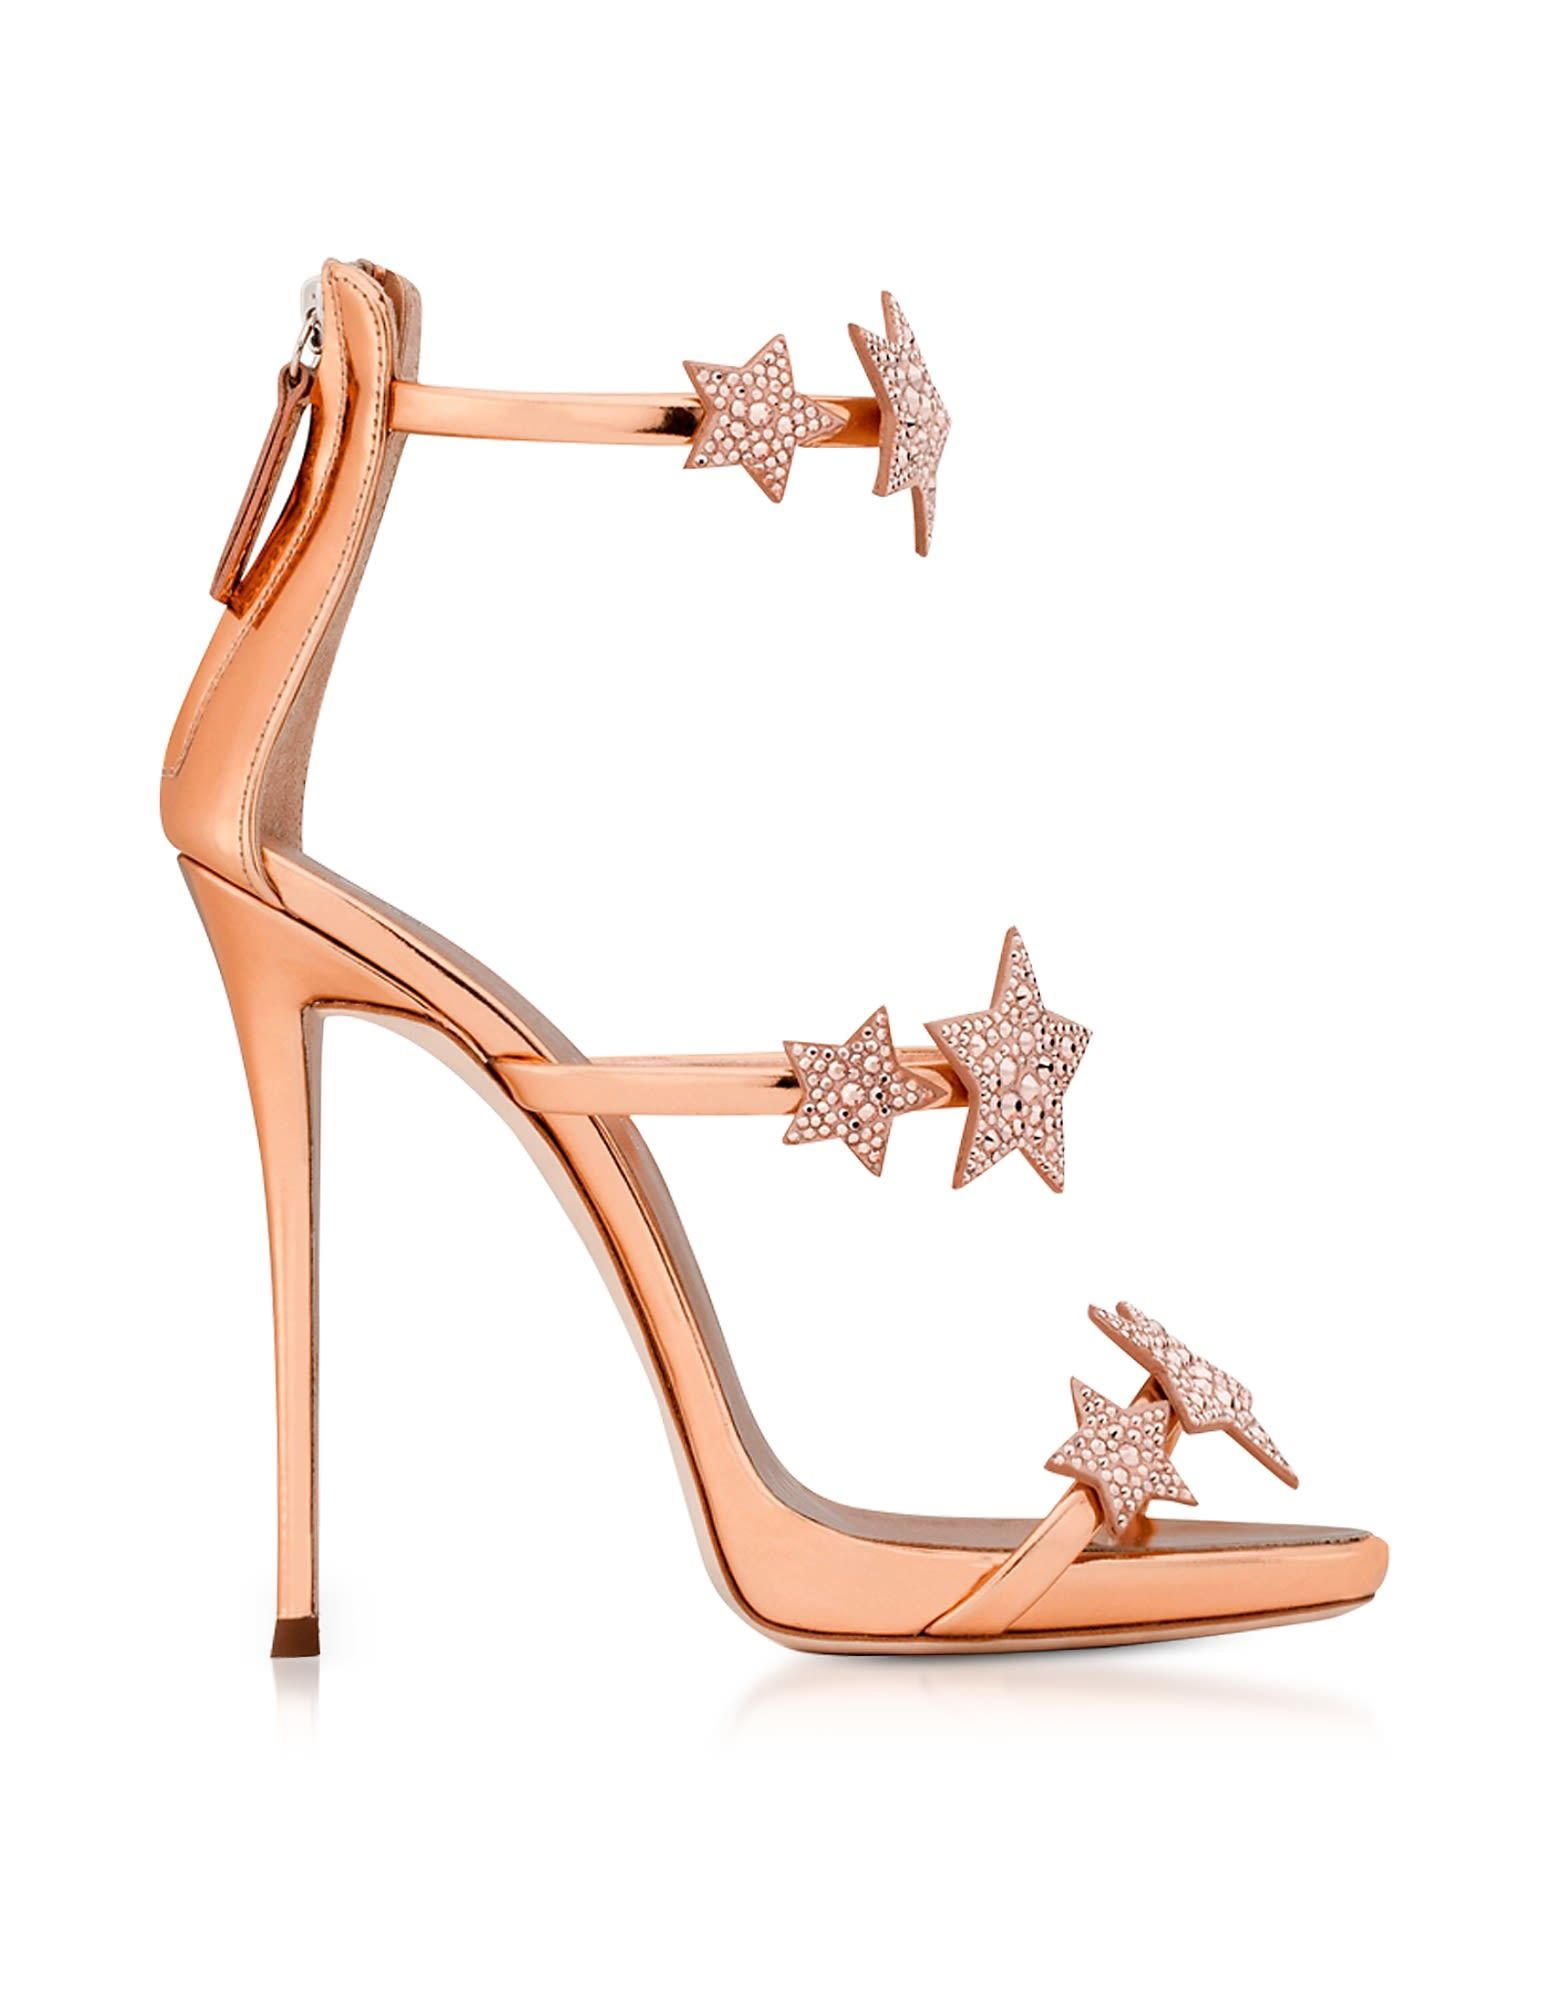 Hearty Aiyuqi Womens Mesh Sandals 2019 Spring New Genuine Leather Womens High Heel Sandals Women's Shoes Large Size 41 42 Summer Dress Shoes Women Luxuriant In Design Heels